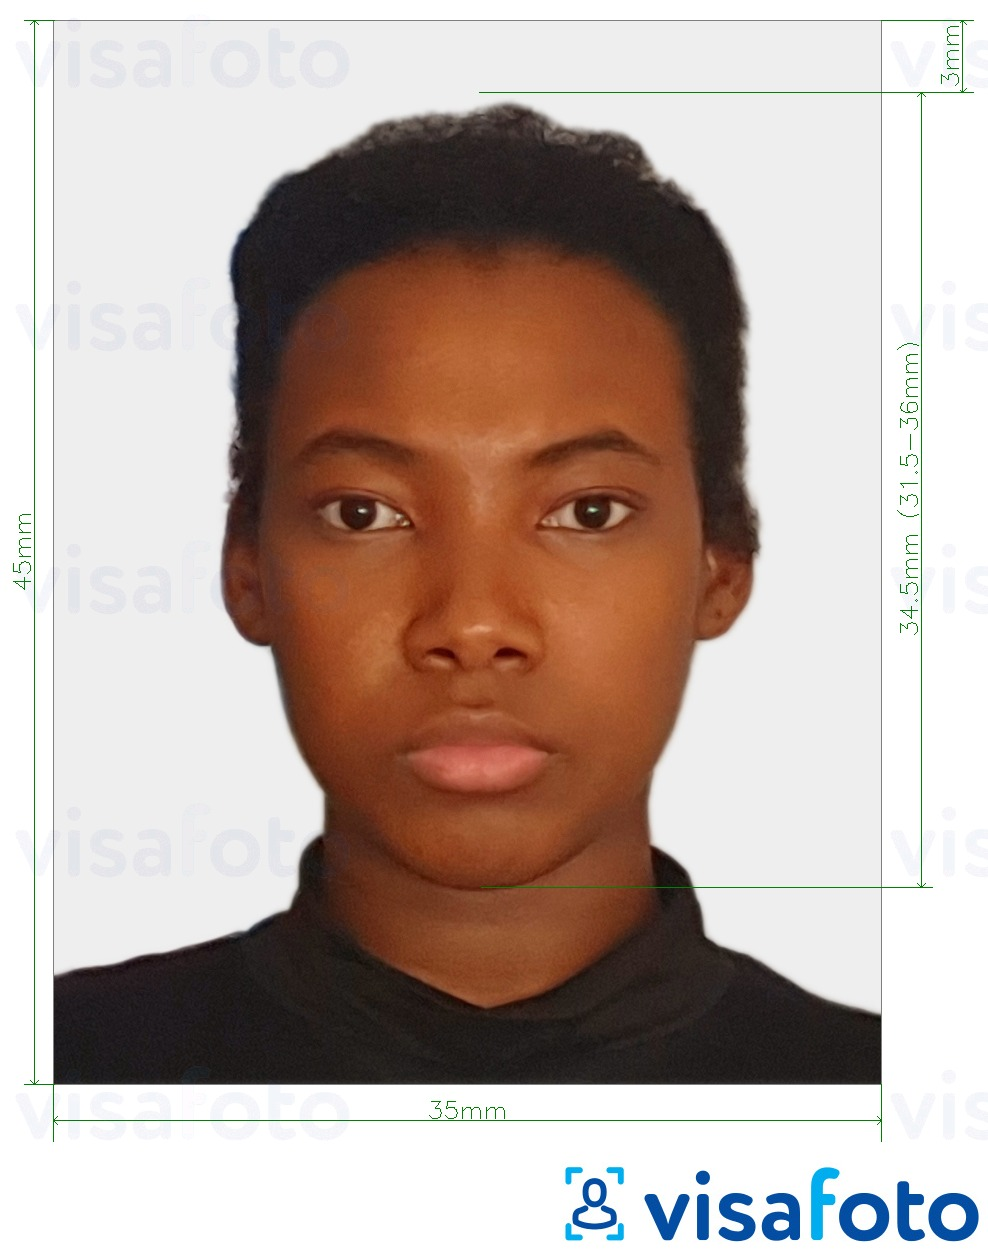 Example of photo for South Africa Visa with exact size specification